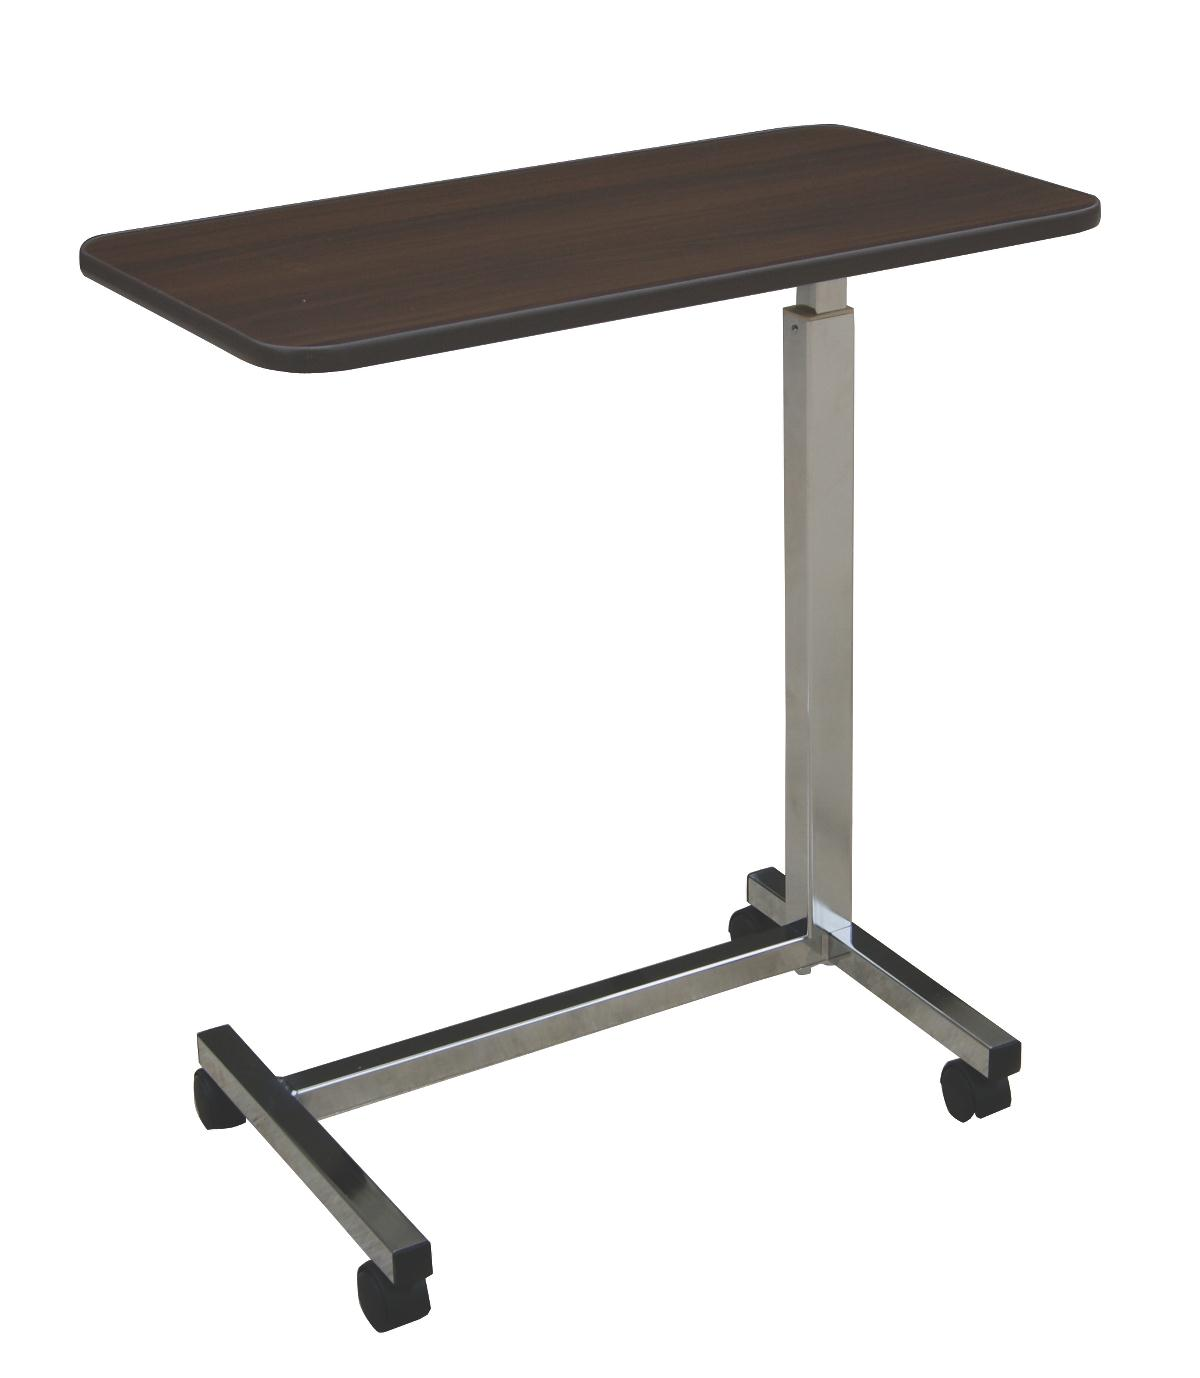 overbed-table.jpg